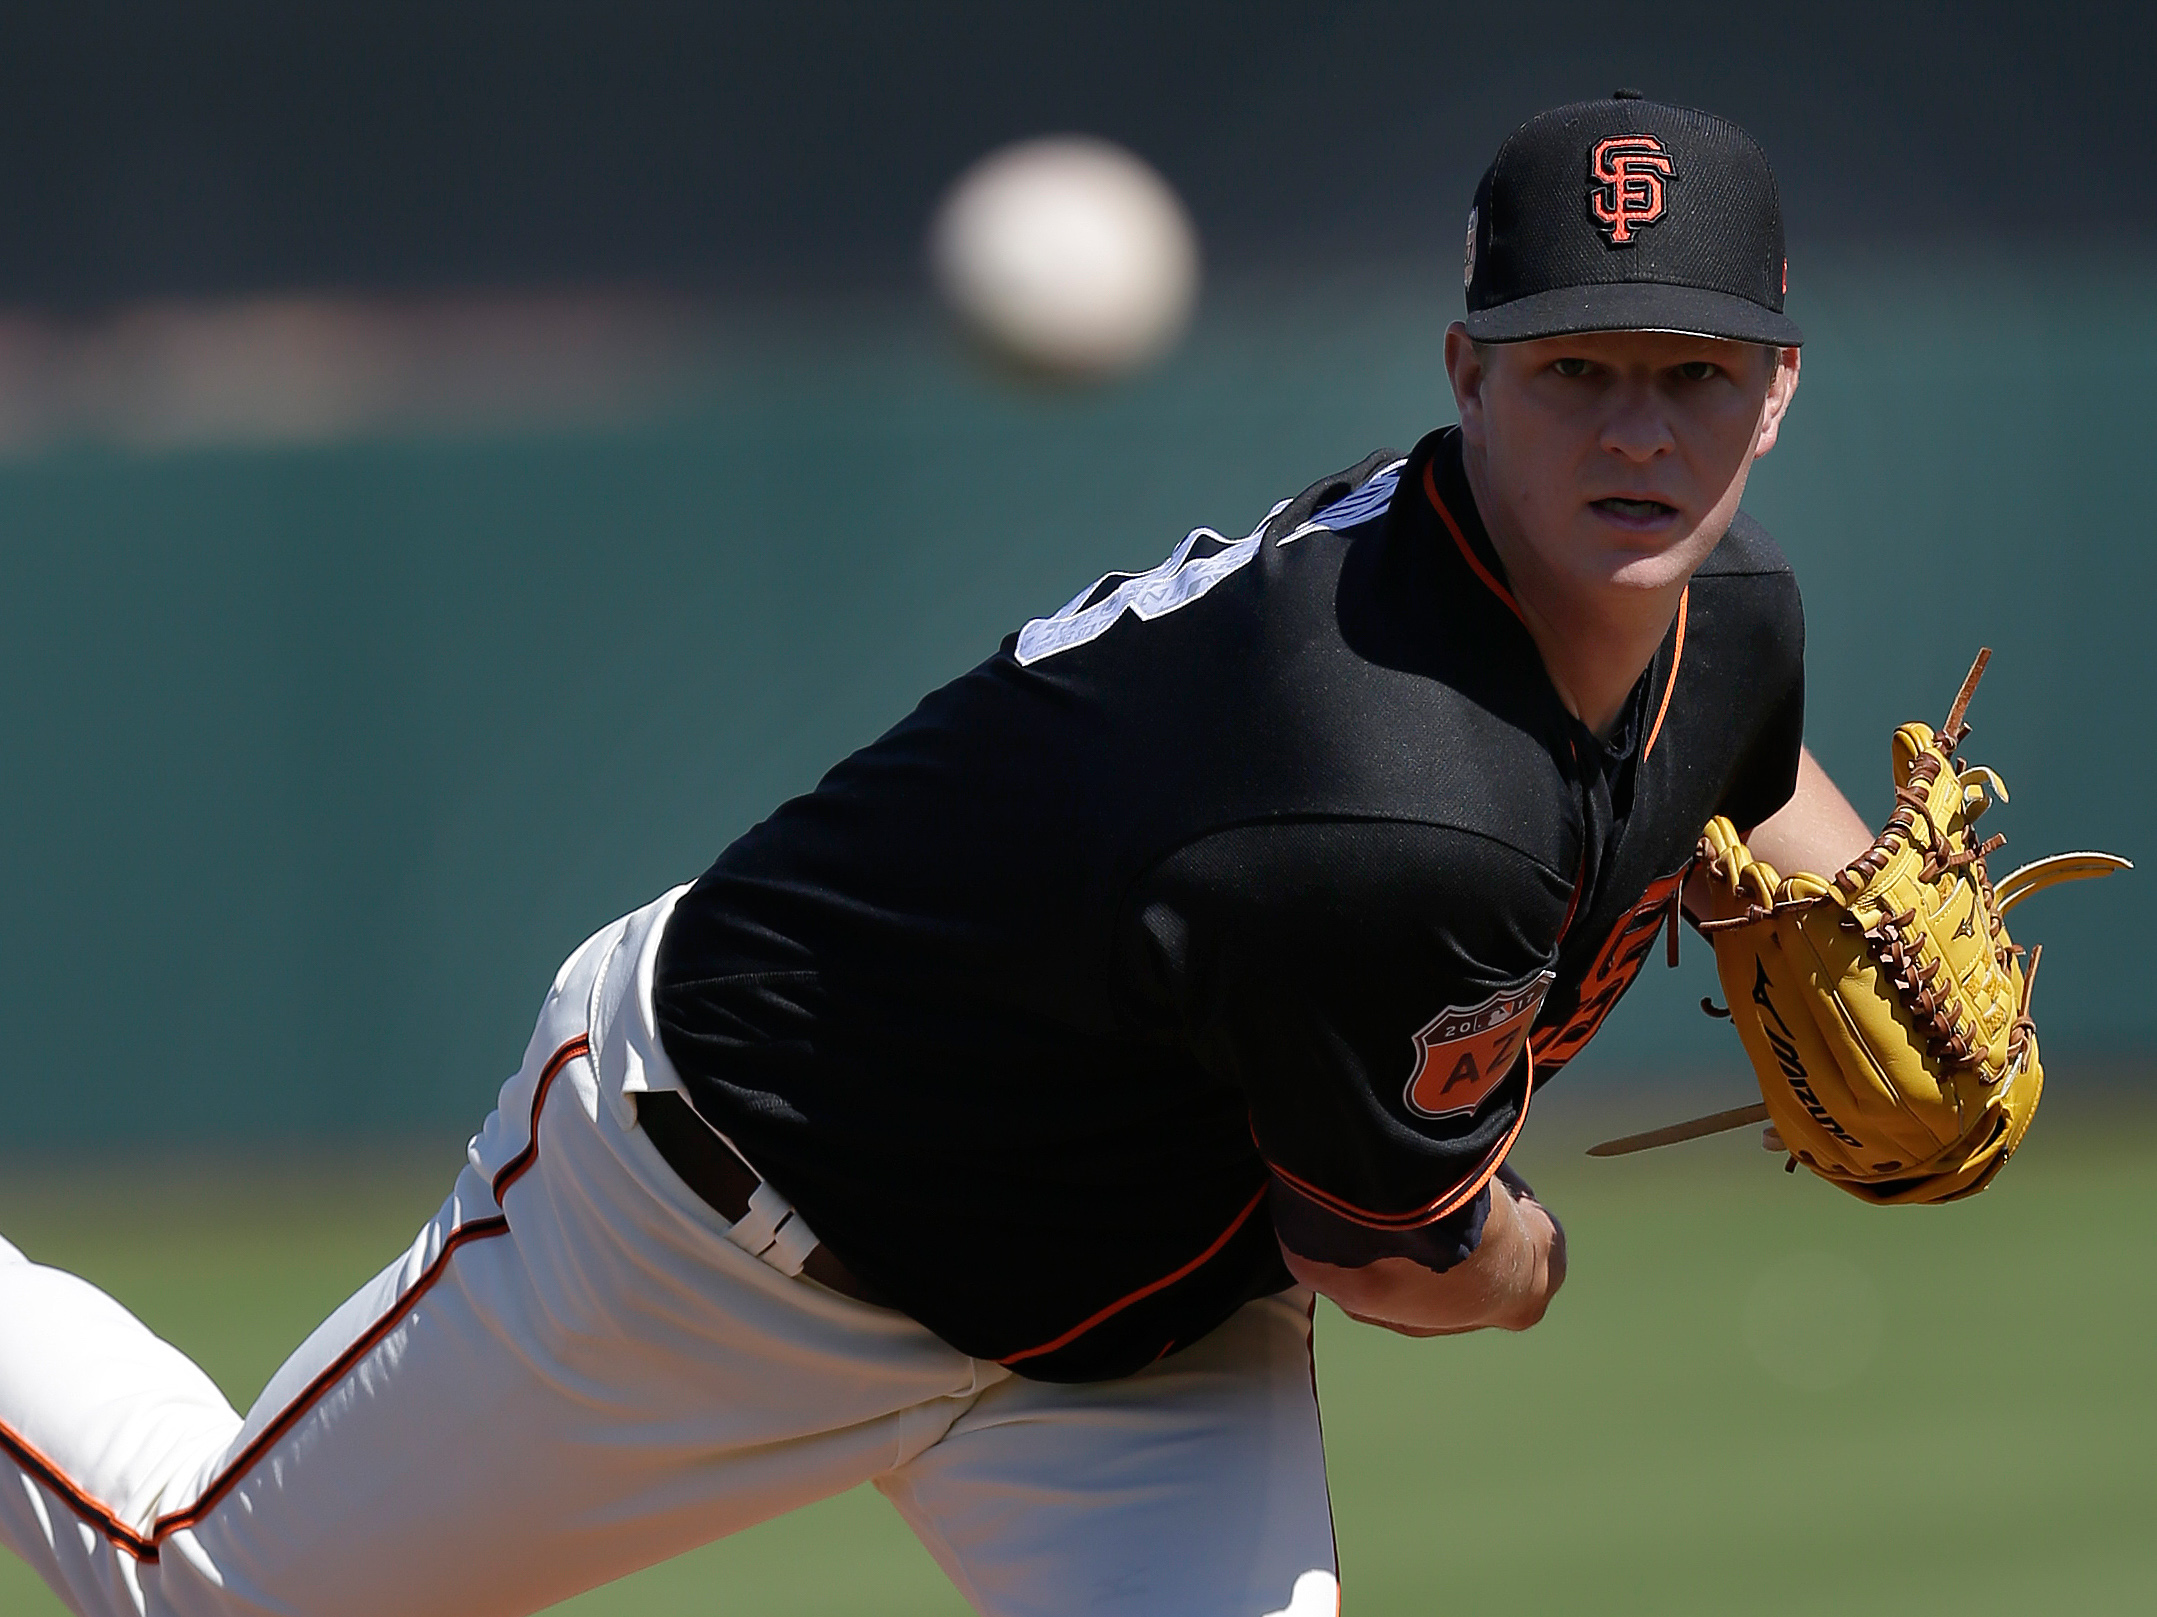 9909729-mlb-spring-training-chicago-cubs-at-san-francisco-giants